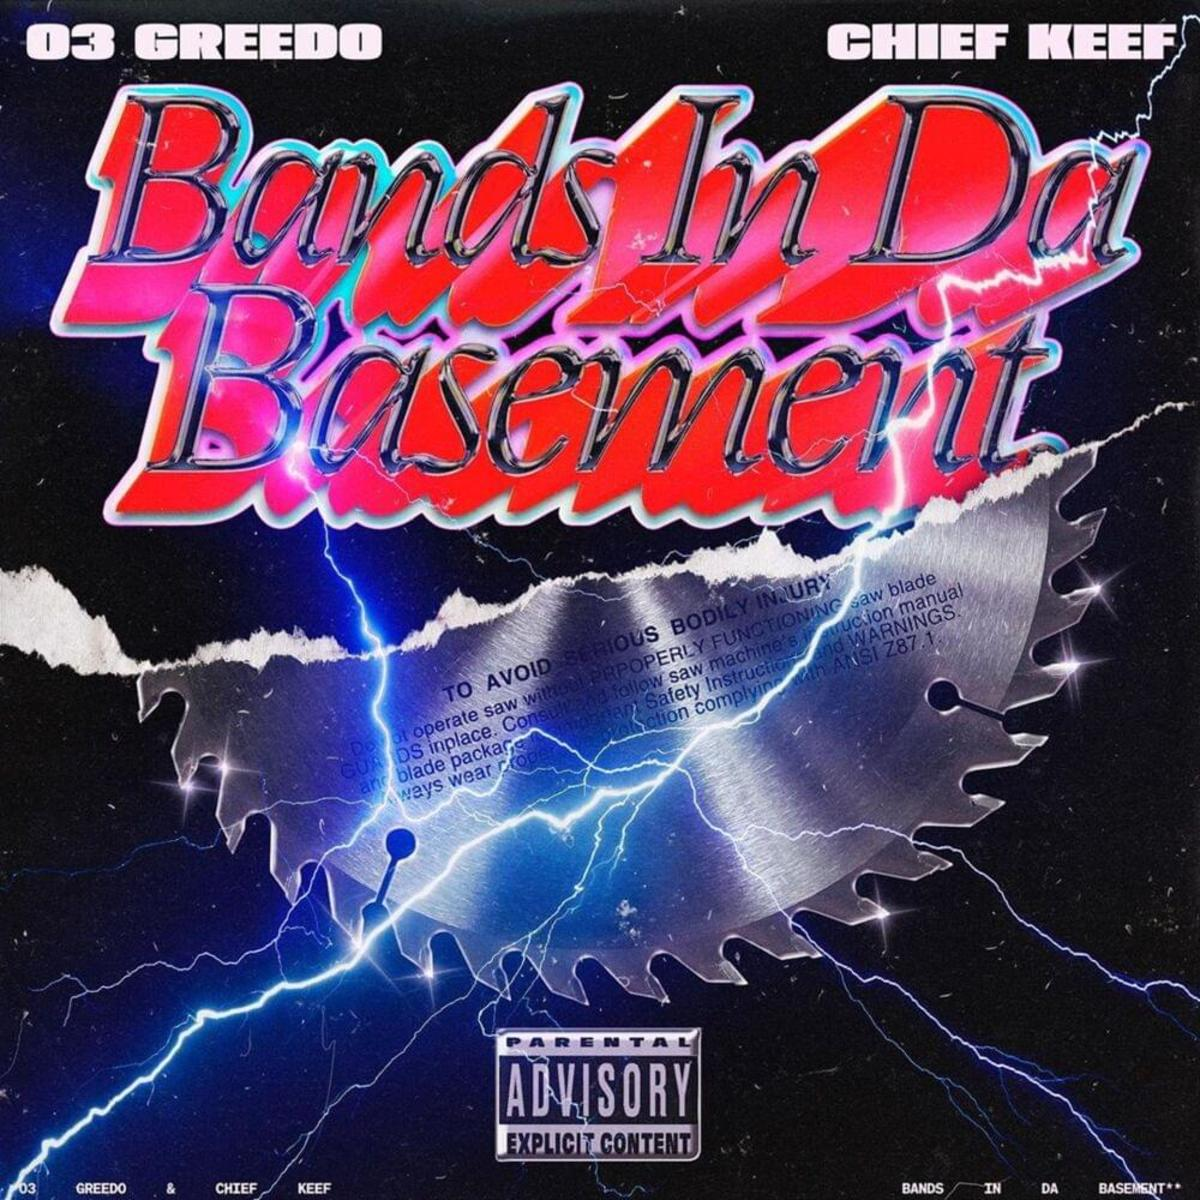 03 Greedo Ron-RonTheProducer Chief Keef